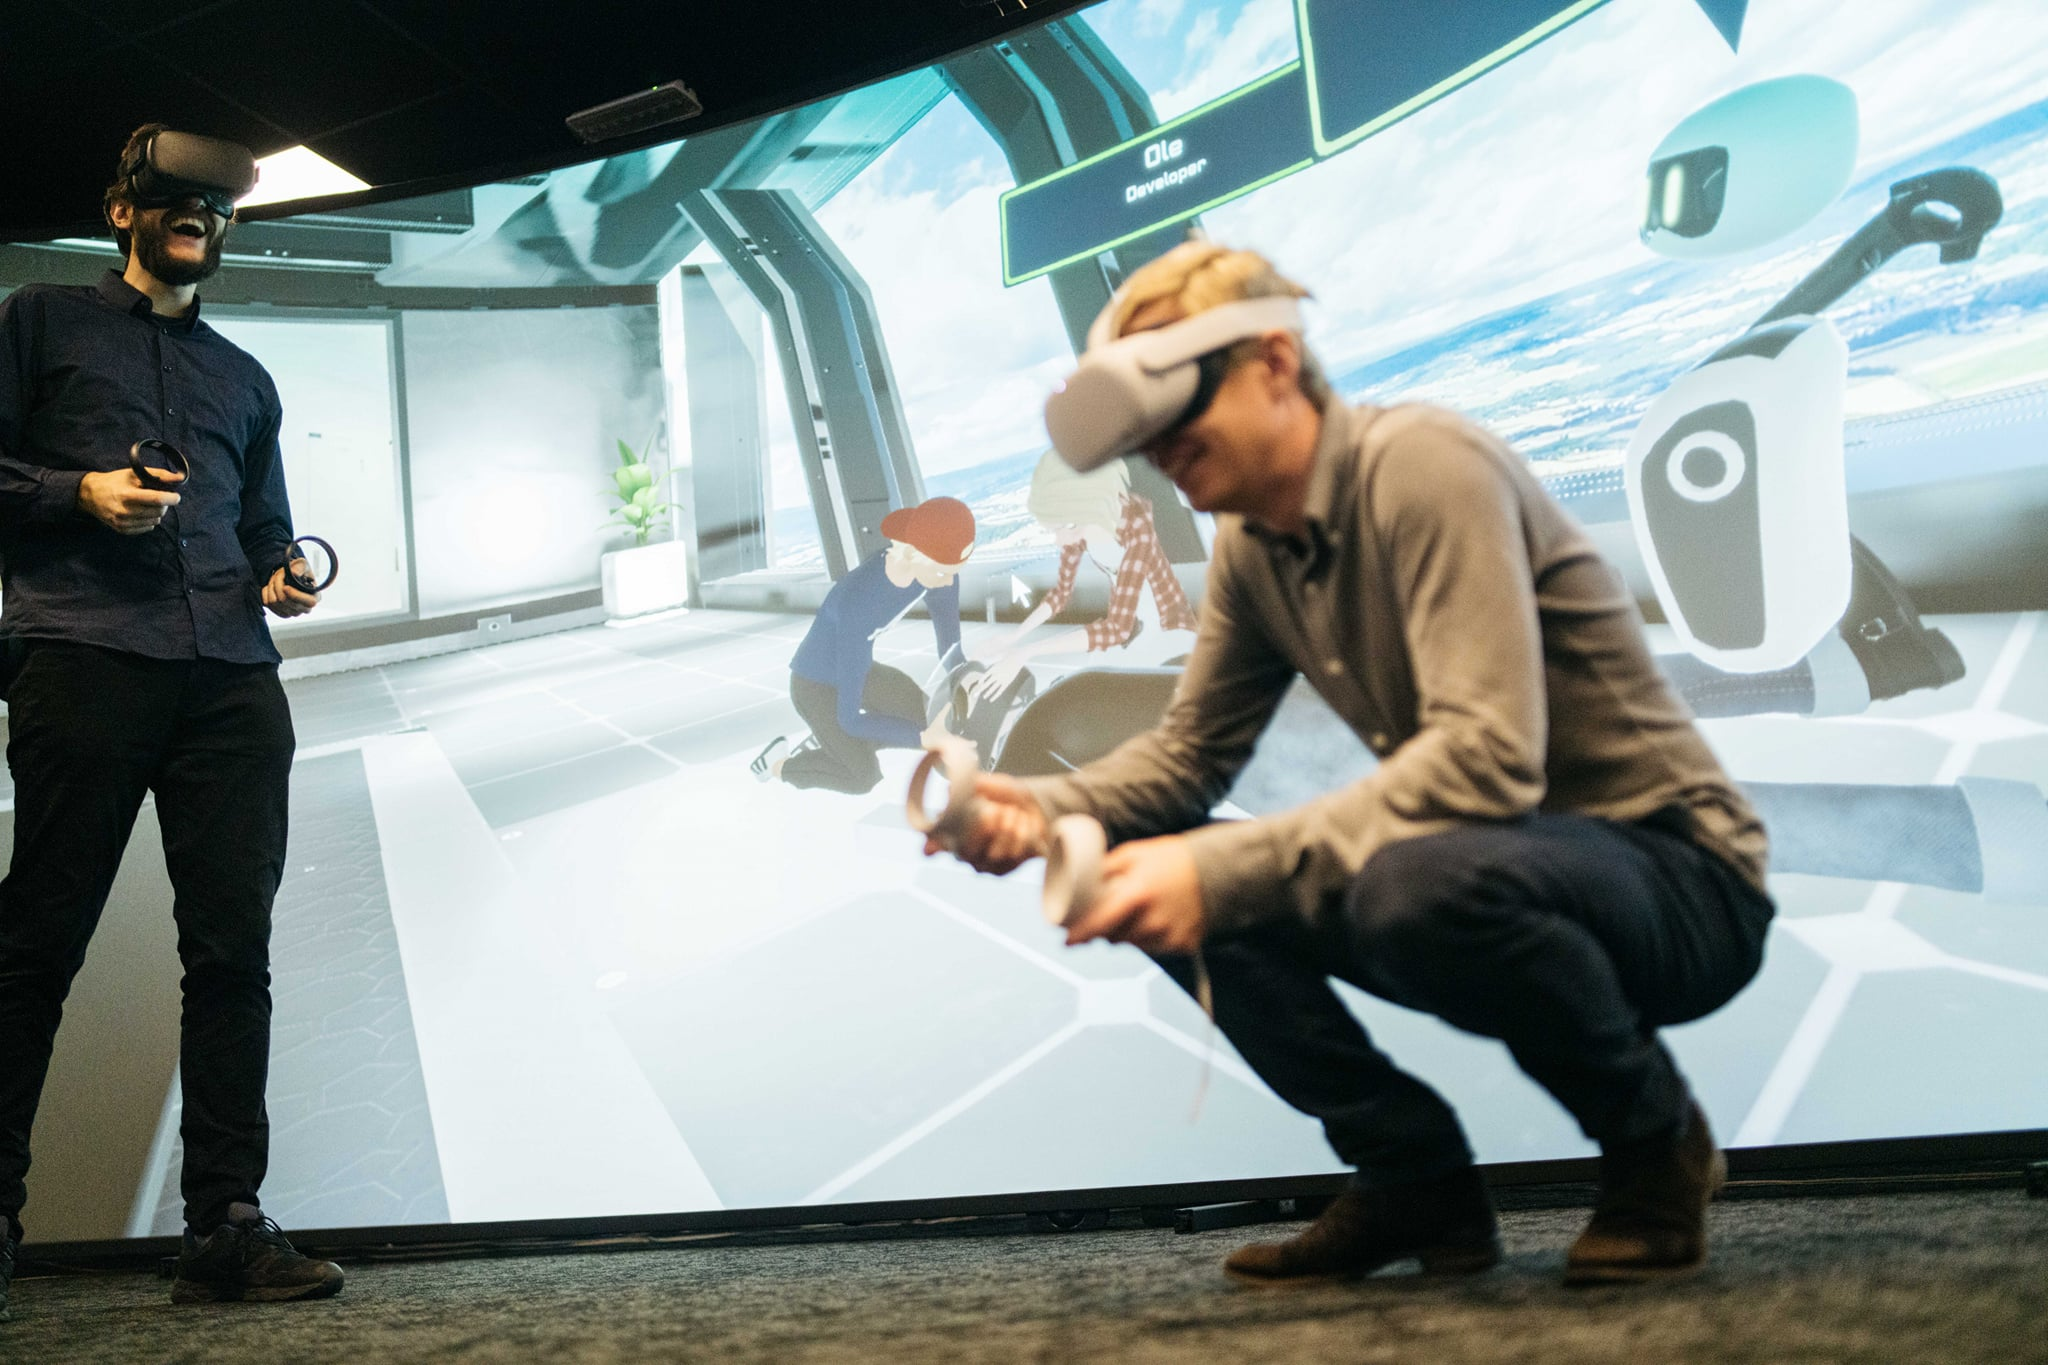 Fynd Reality employees wearing VR headsets; in the background there's a canvas showing a immersive learning scene in virtual reality.